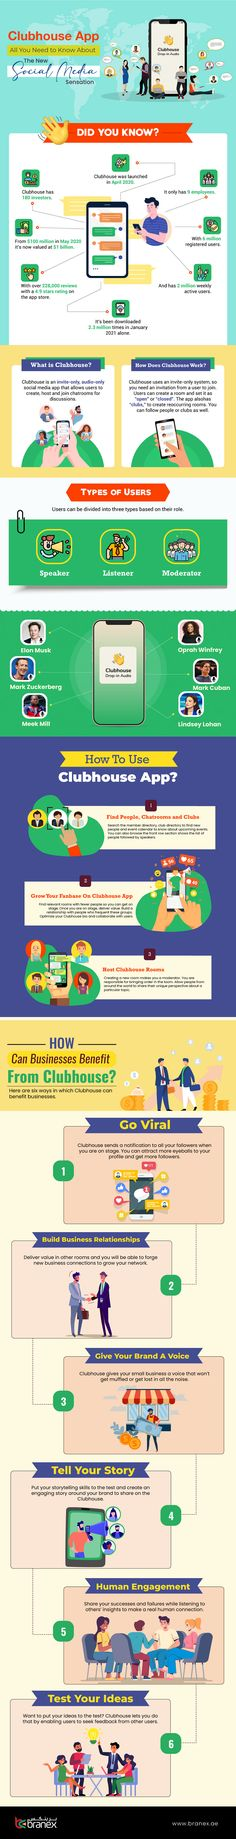 Everything Brands Need to Know About Clubhouse [Infographic] | Social Media Today History Of Social Media, Social Media List, Content Marketing Strategy, Social Media Marketing, Digital Marketing, Social Networks, Social Media Landscape, Web Technology, App Development Companies